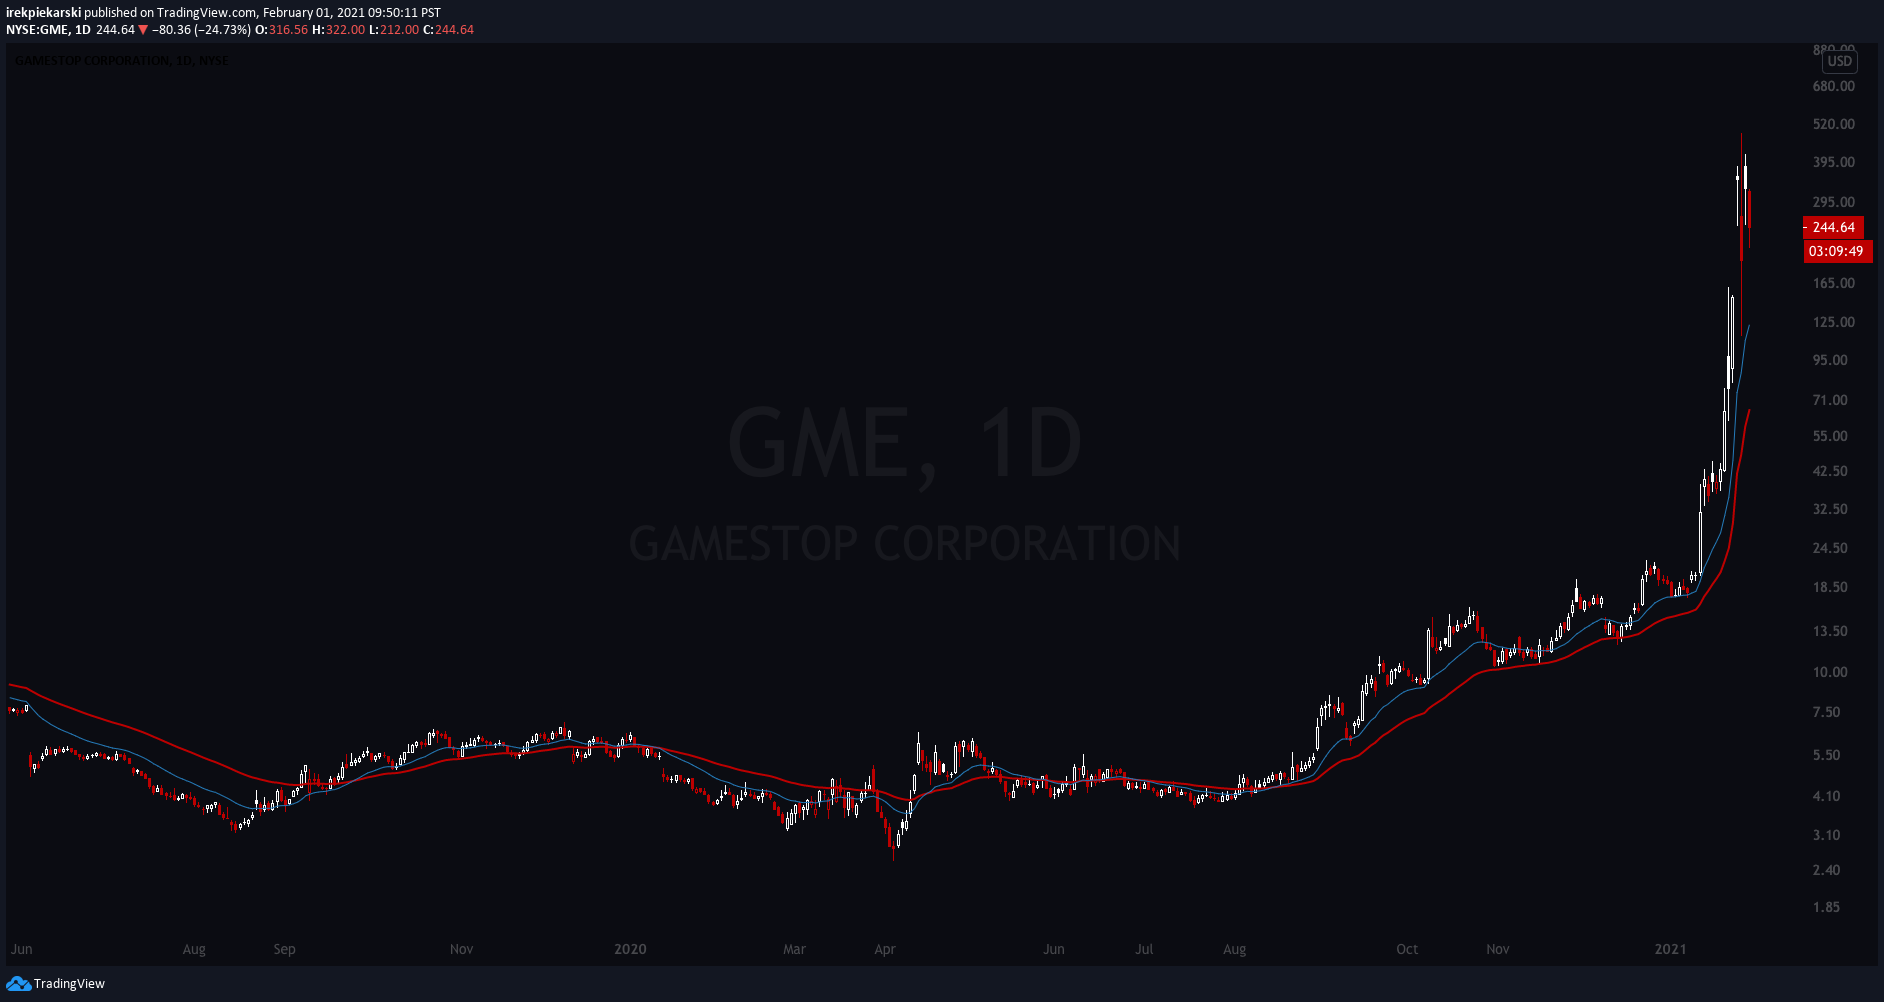 GME daily chart